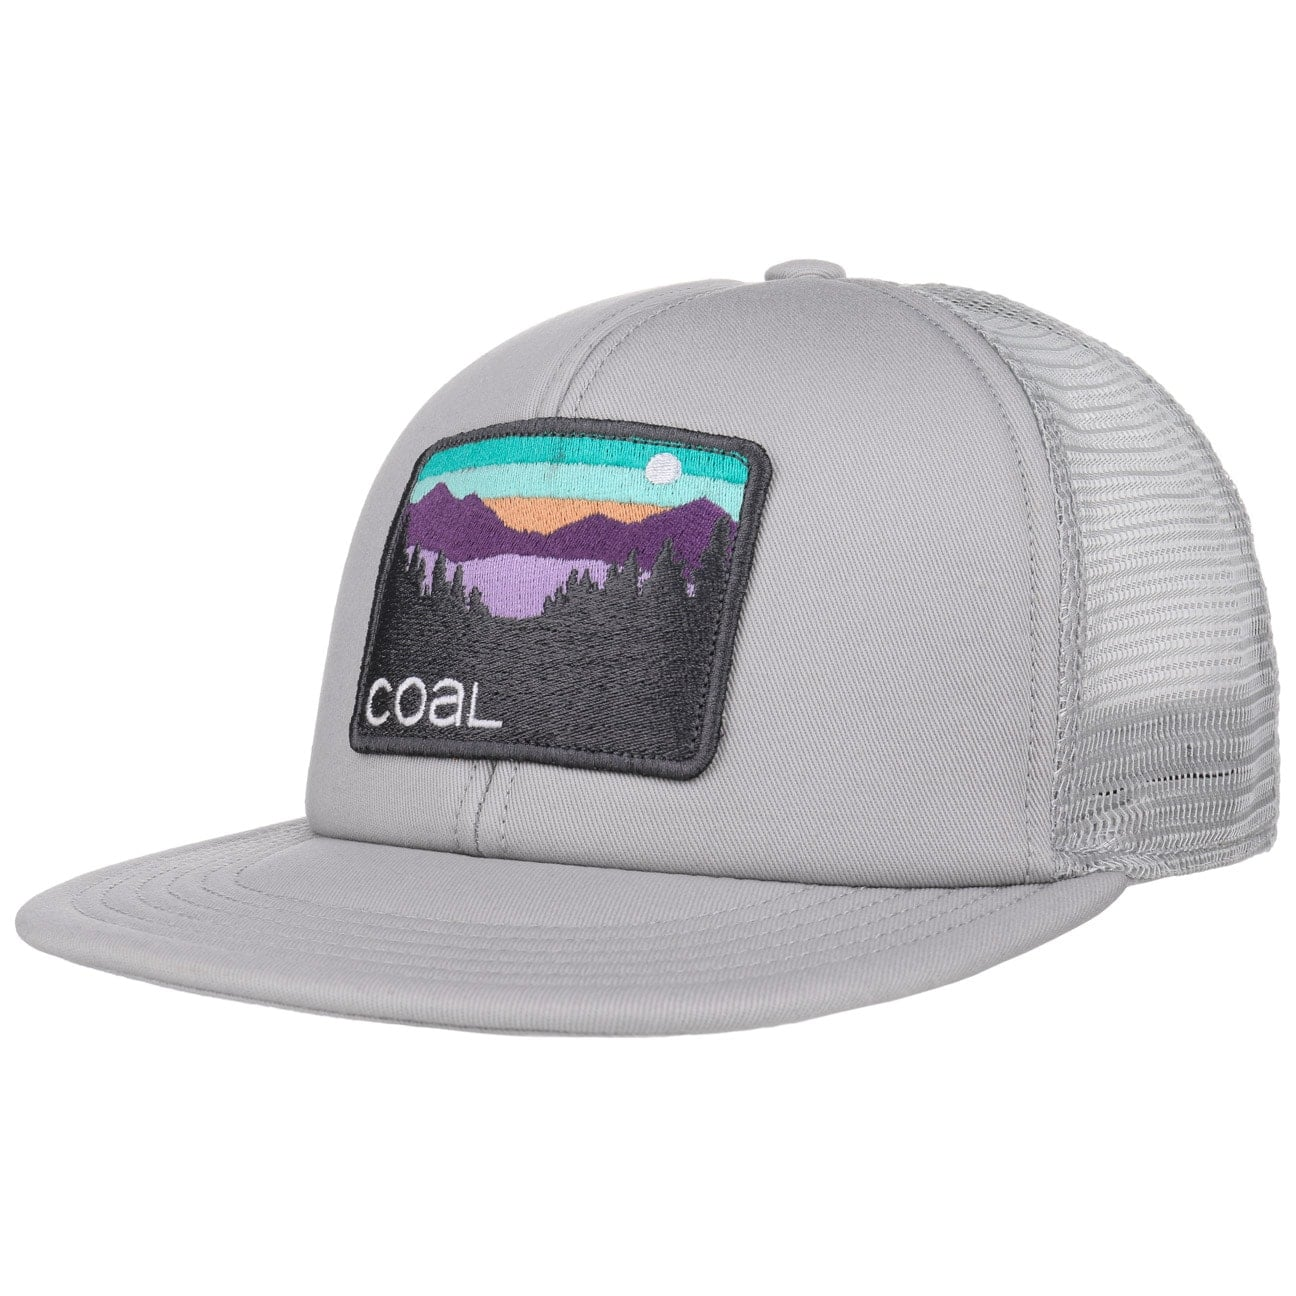 Gorra The Hauler Snapback Cap by Coal